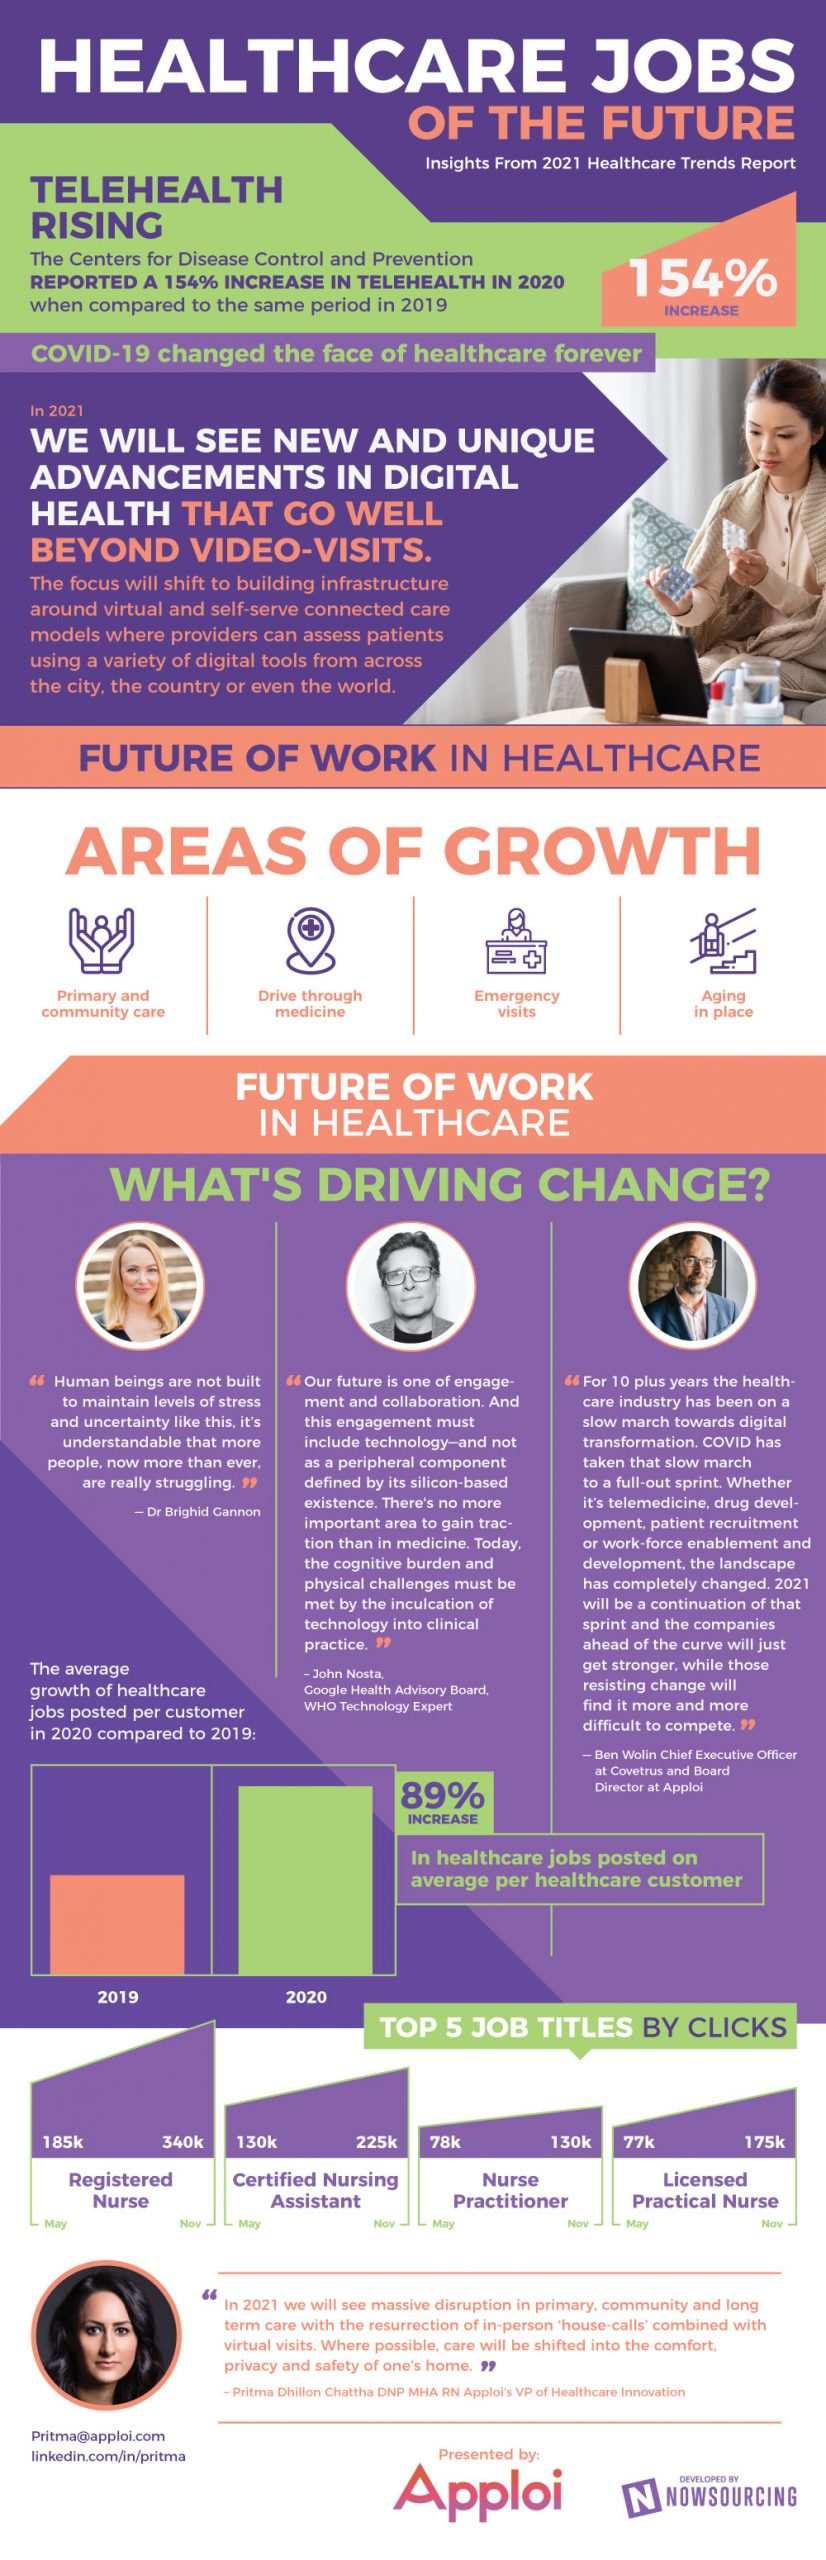 healthcare jobs of the future (infographic)